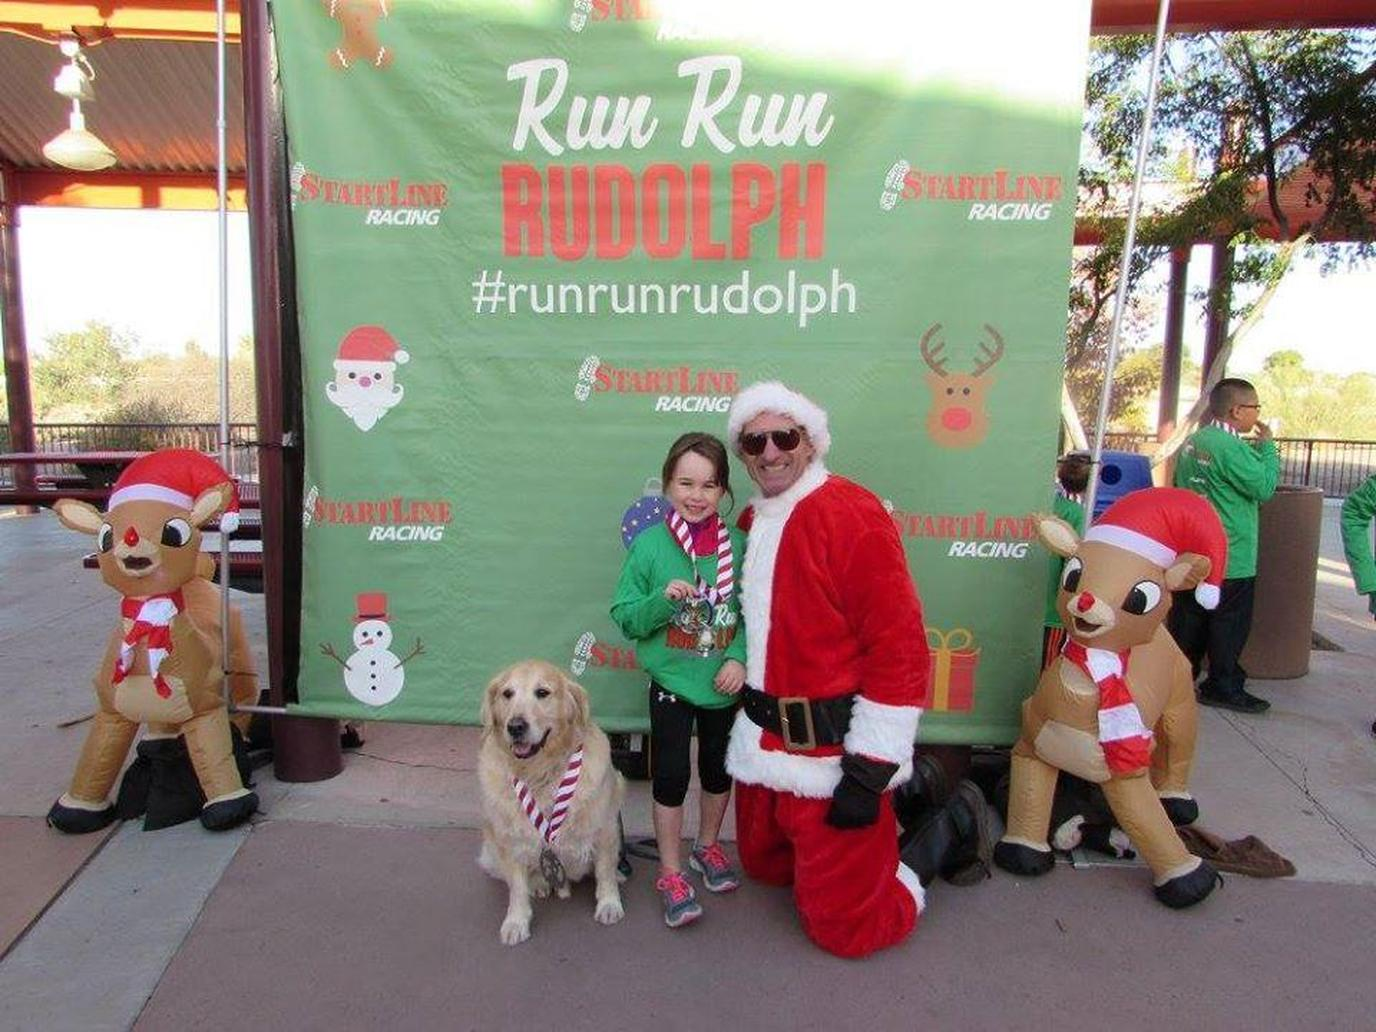 A Man Dressed as Santa Poses With a Girl and a Dog at a Pet-Friendly Christmas Race in Arizona.